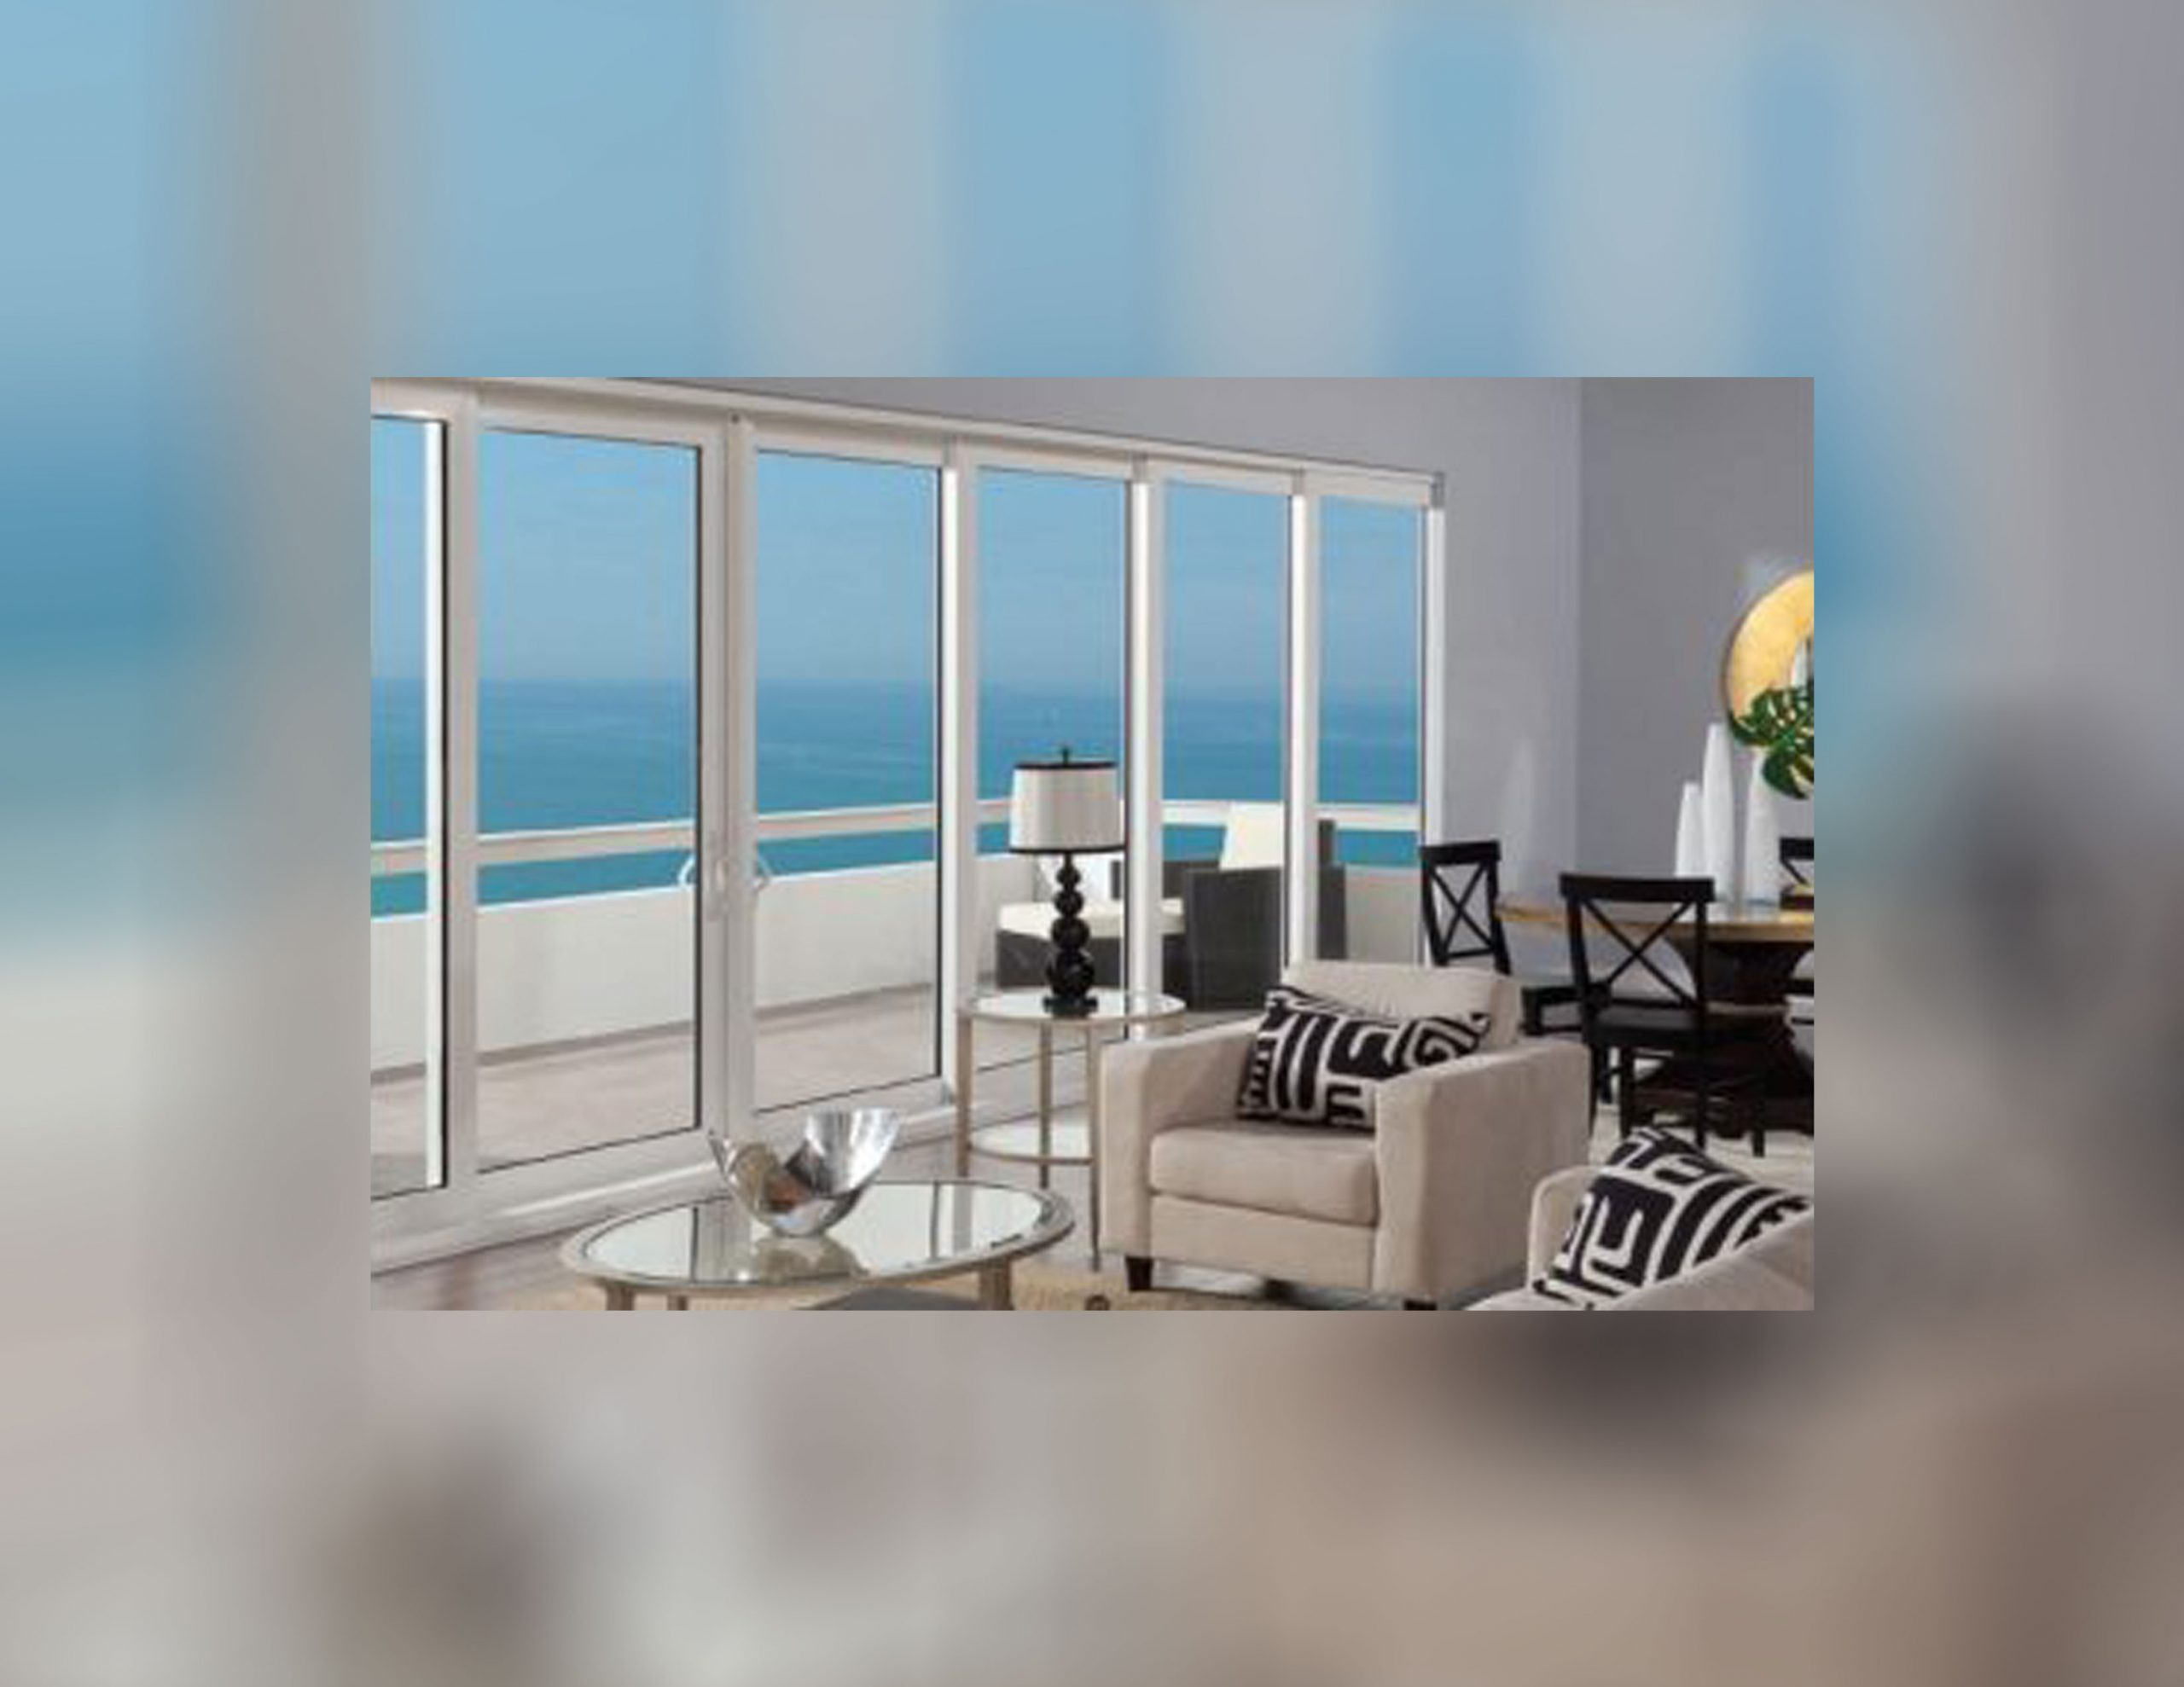 Professional Commercial Window Replacements in Southwest Florida